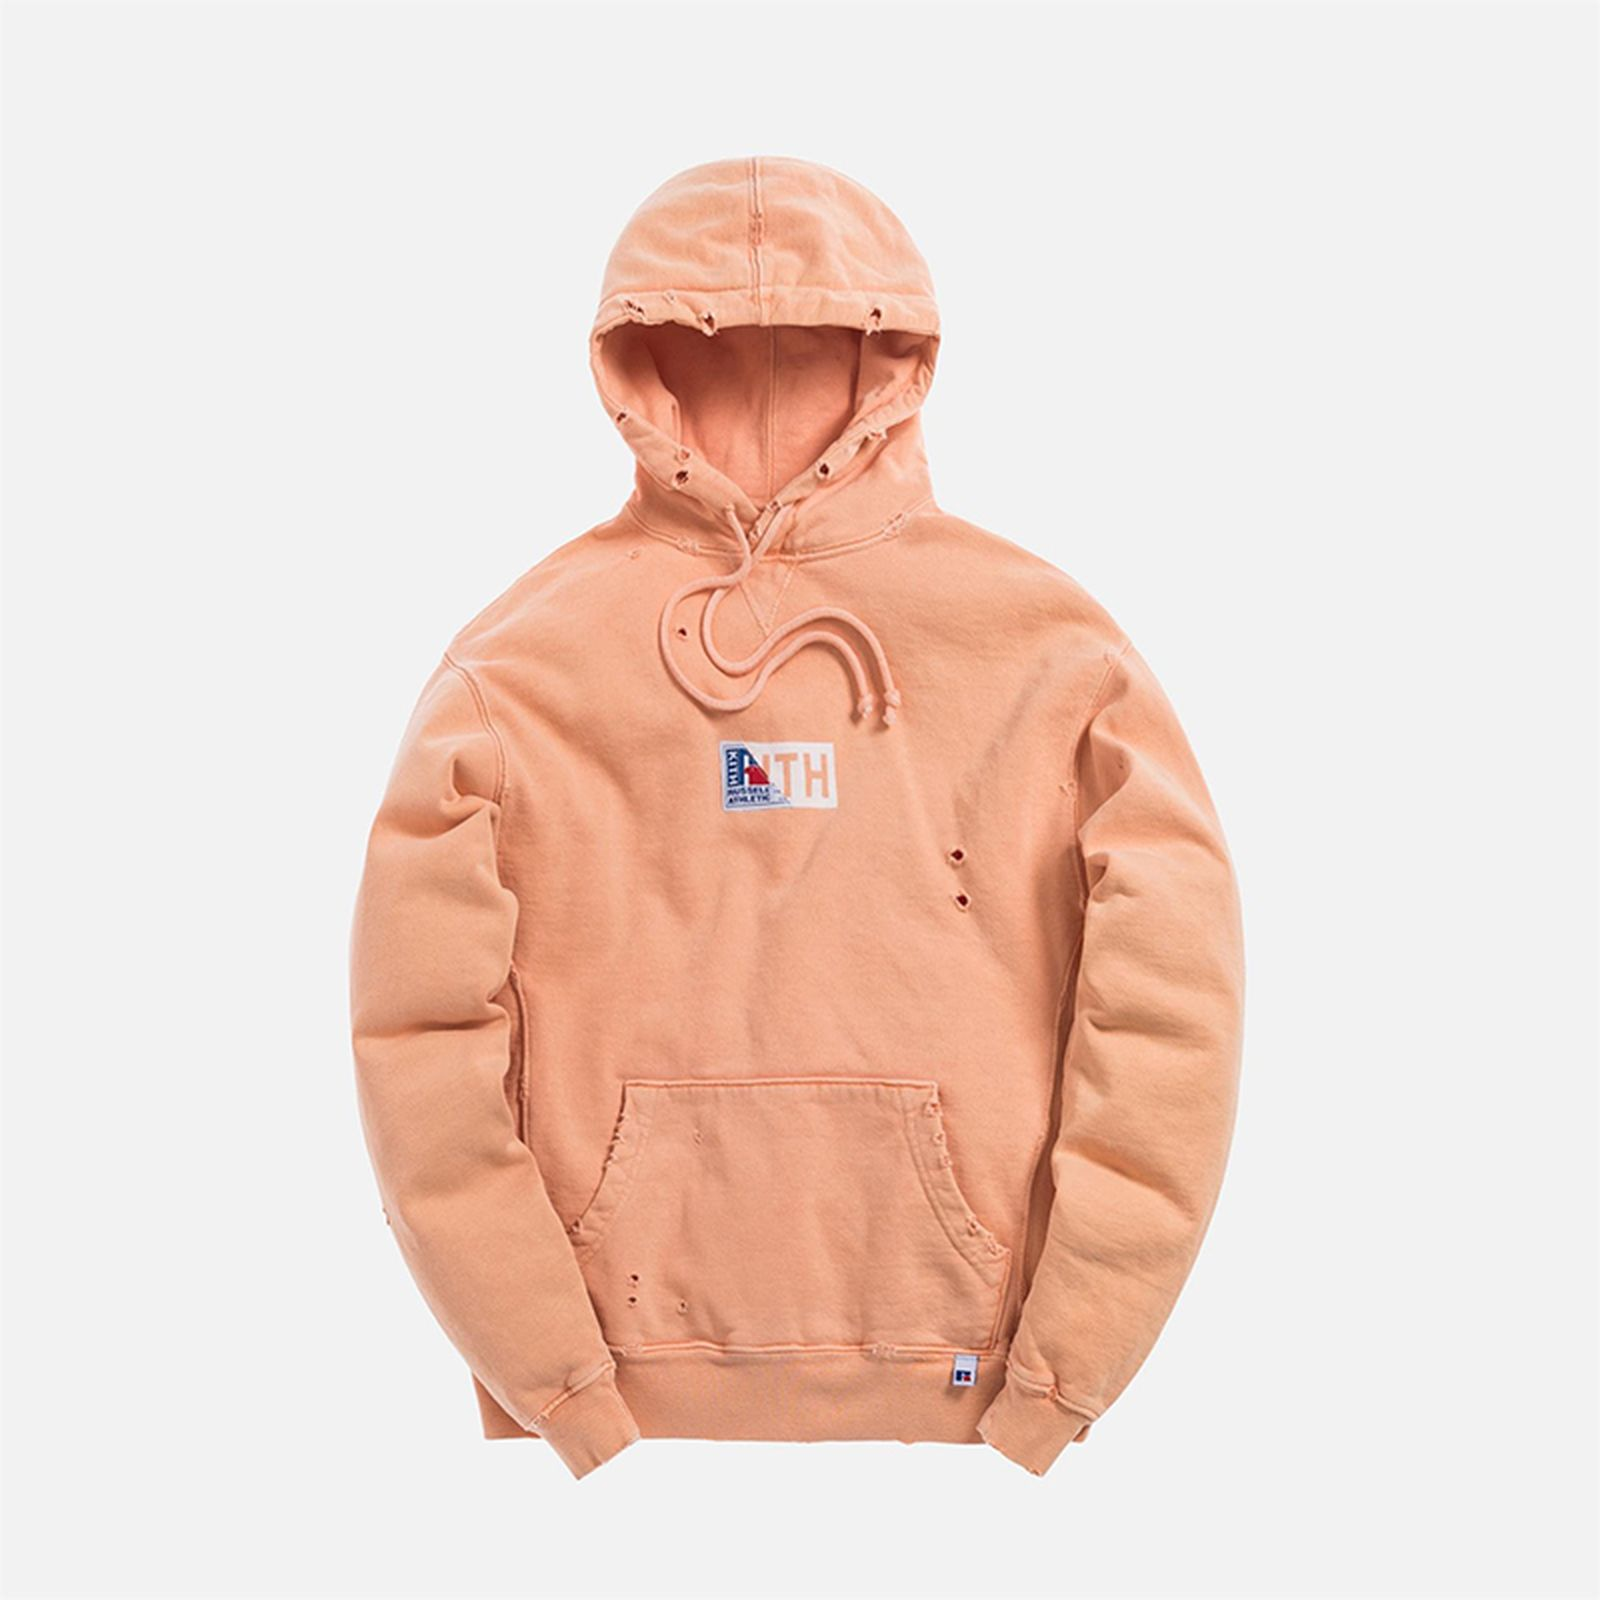 kith russell athletics collection ronnie fieg